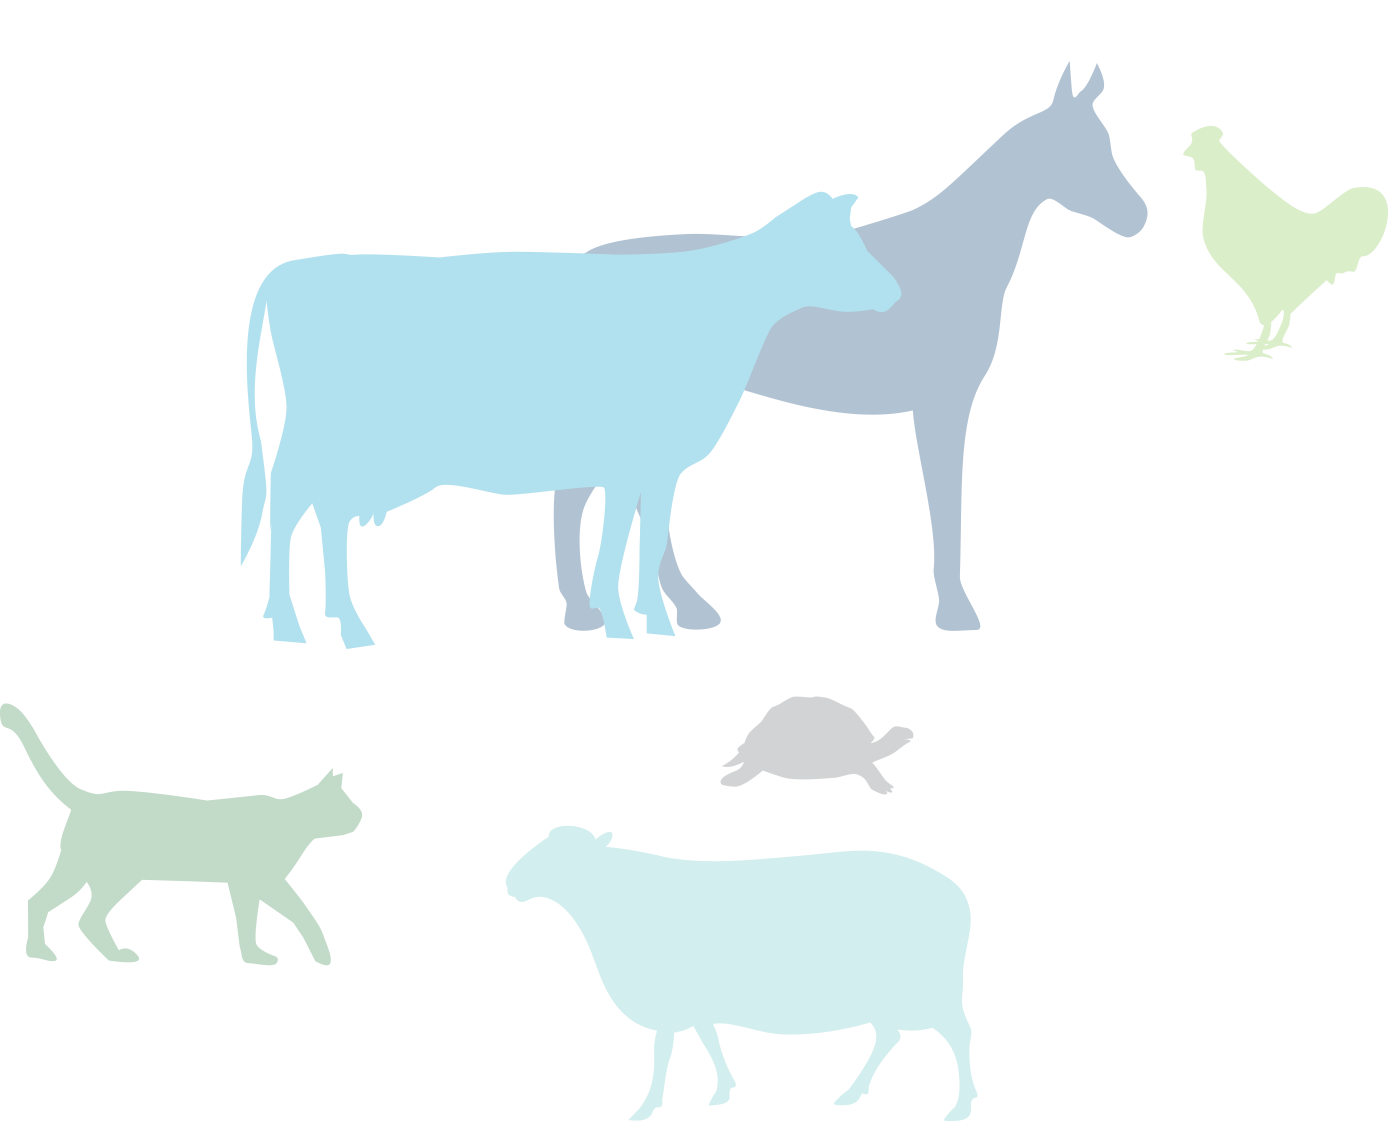 Clipart cow digestive system. Frontiers in veterinary science